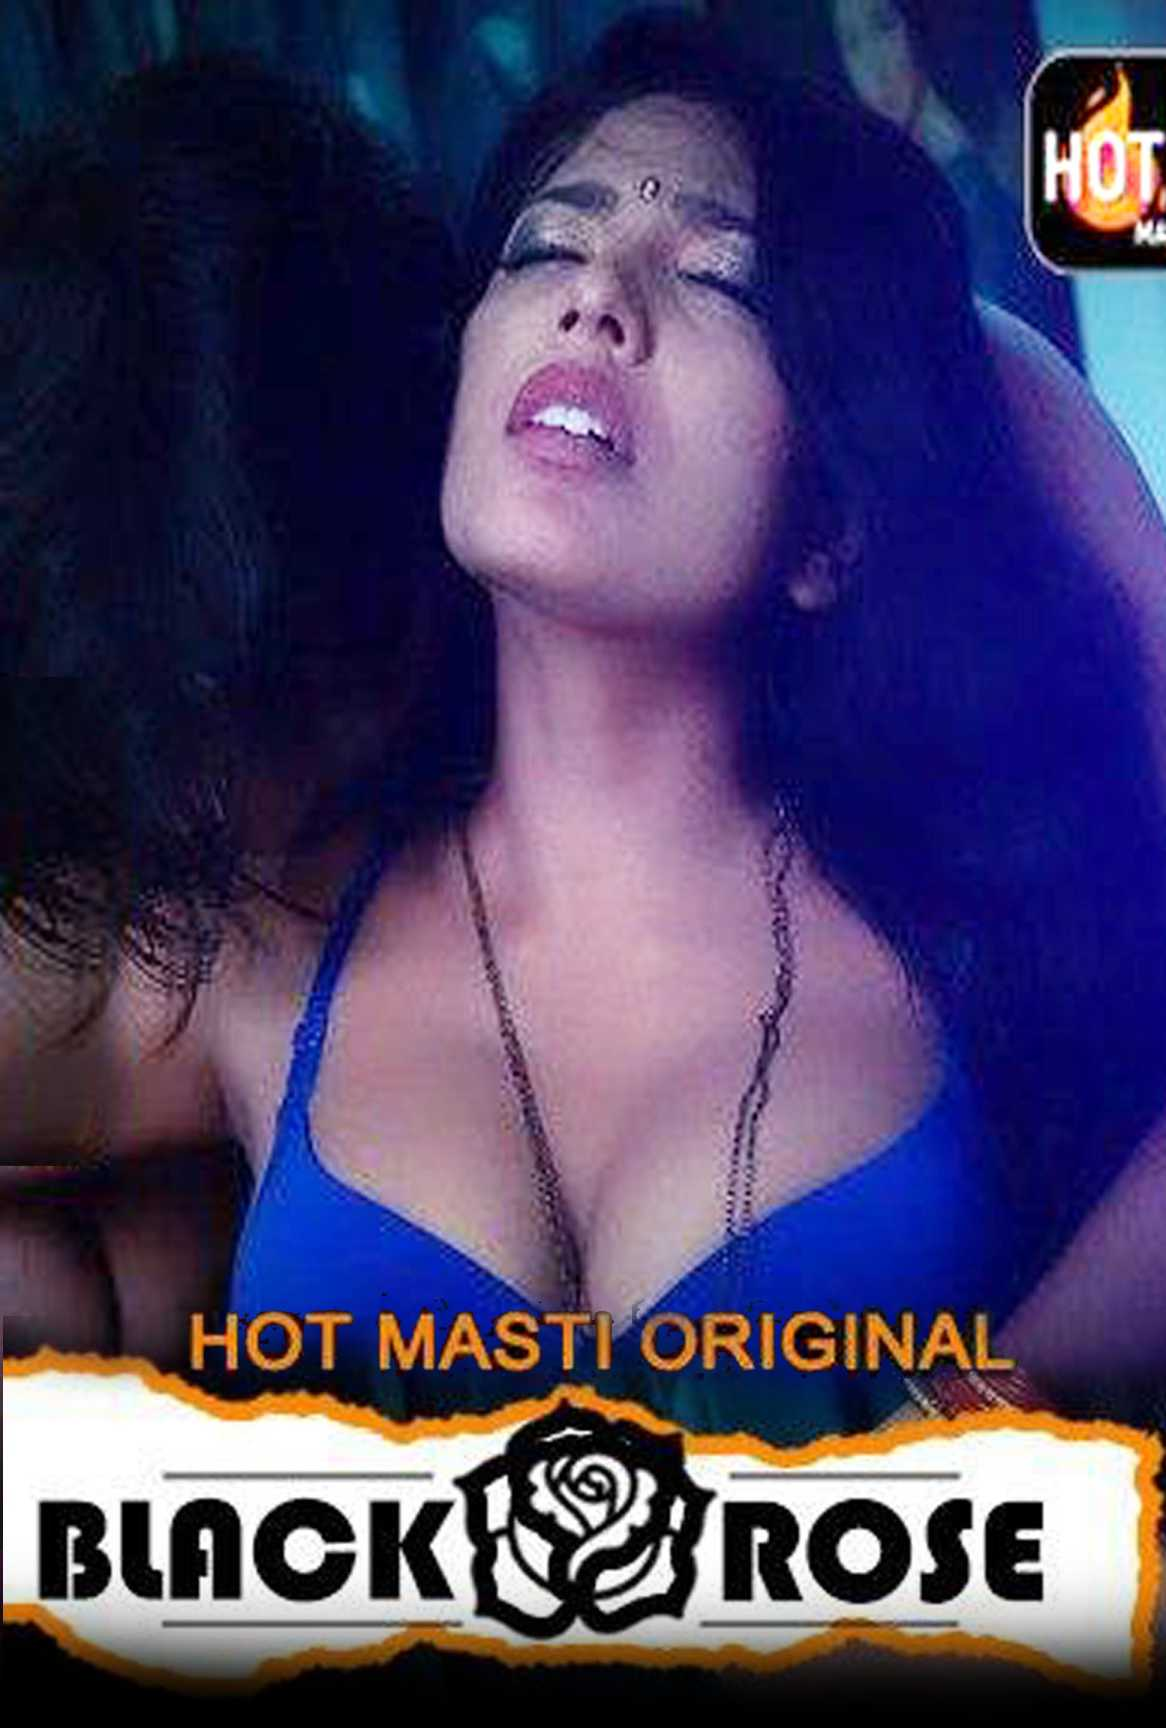 Download Black Rose 2020 S01E02 Hindi HotMasti Original Web Series 720p HDRip 160MB